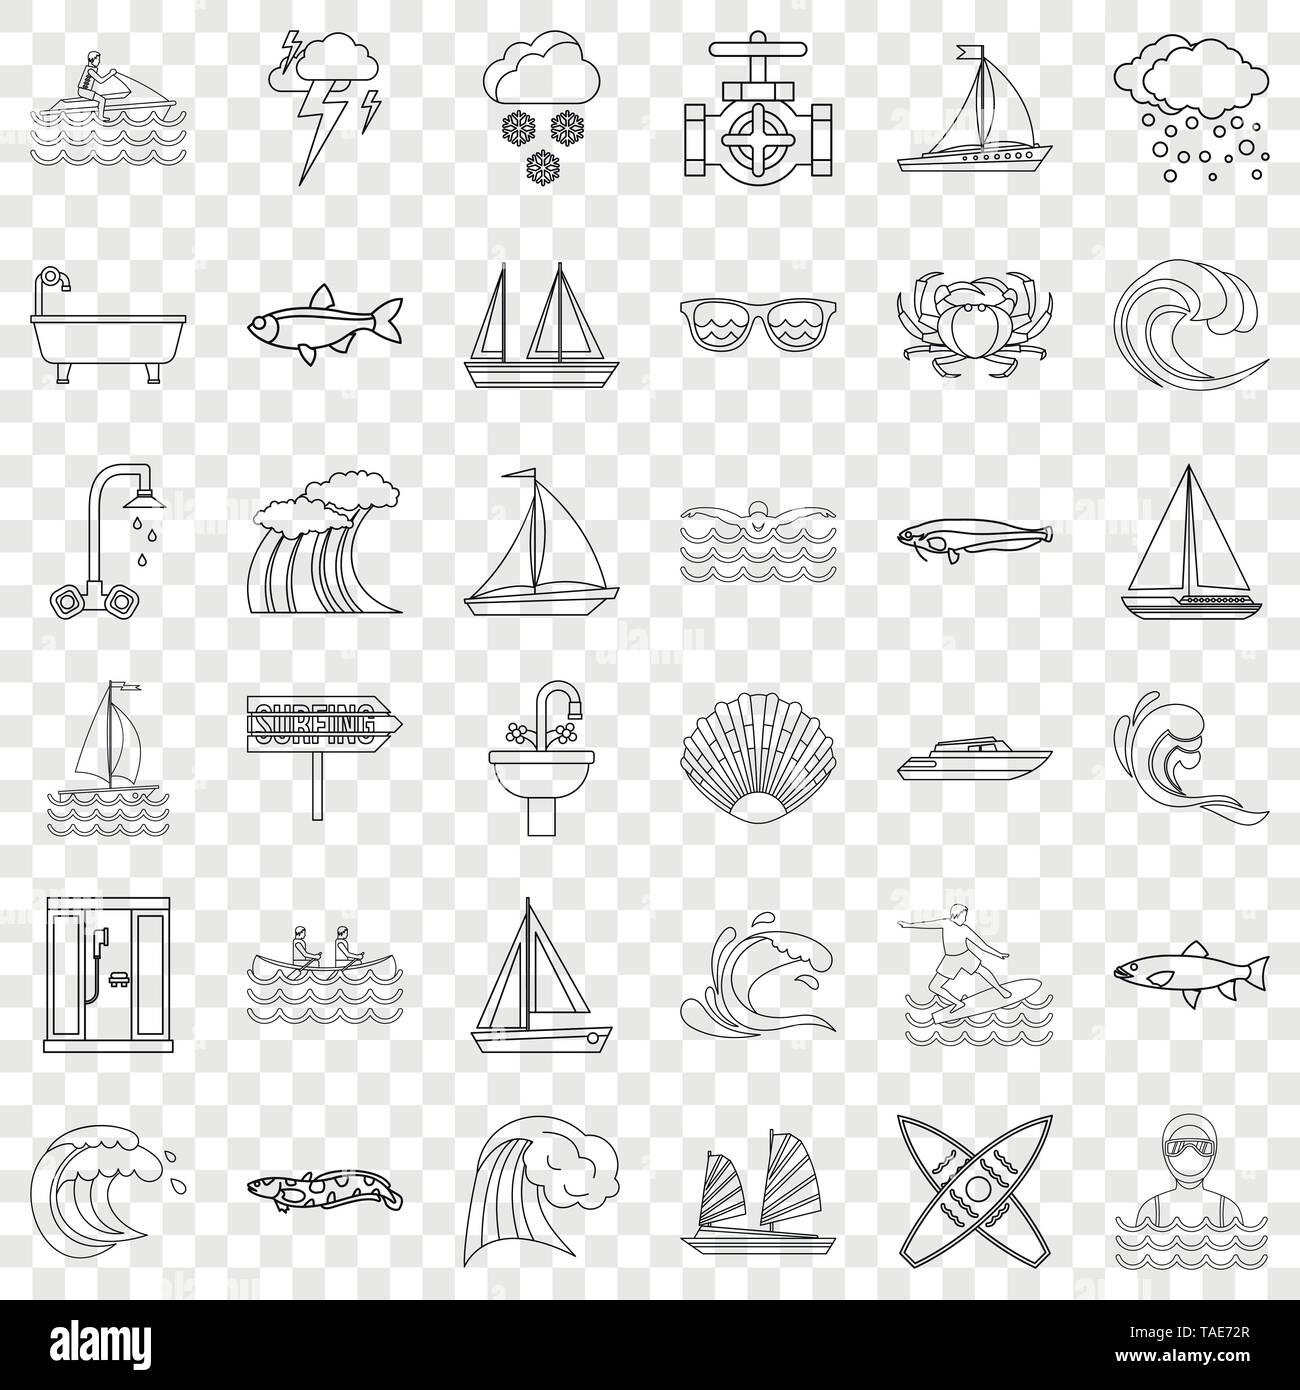 Ocean icons set, outline style - Stock Image